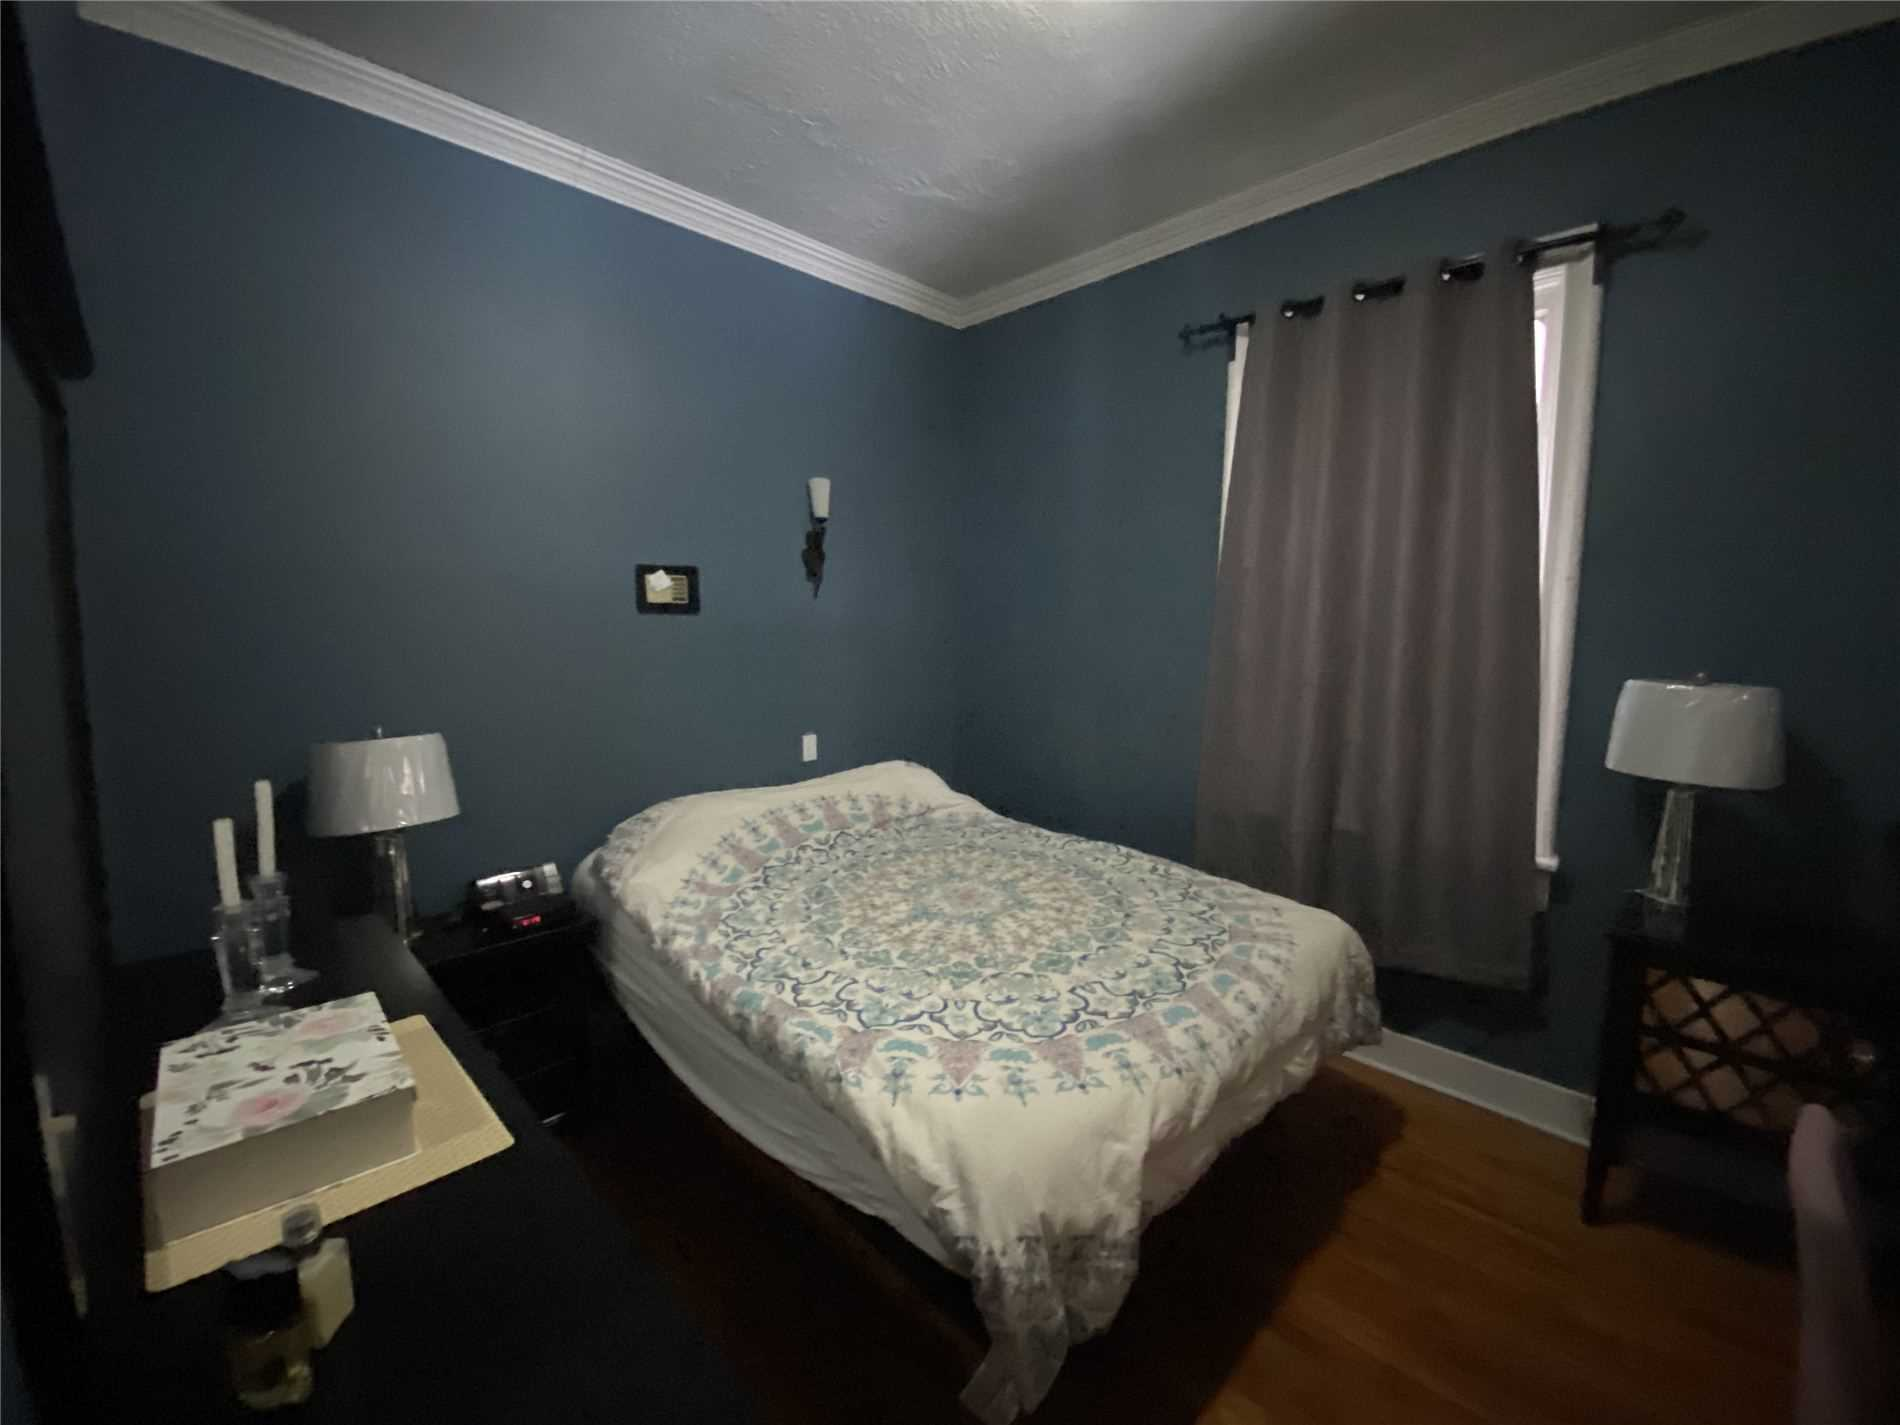 Image 5 of 8 showing inside of 2 Bedroom Detached Bungalow house for sale at 88 Delhi St, Guelph N1E4J7